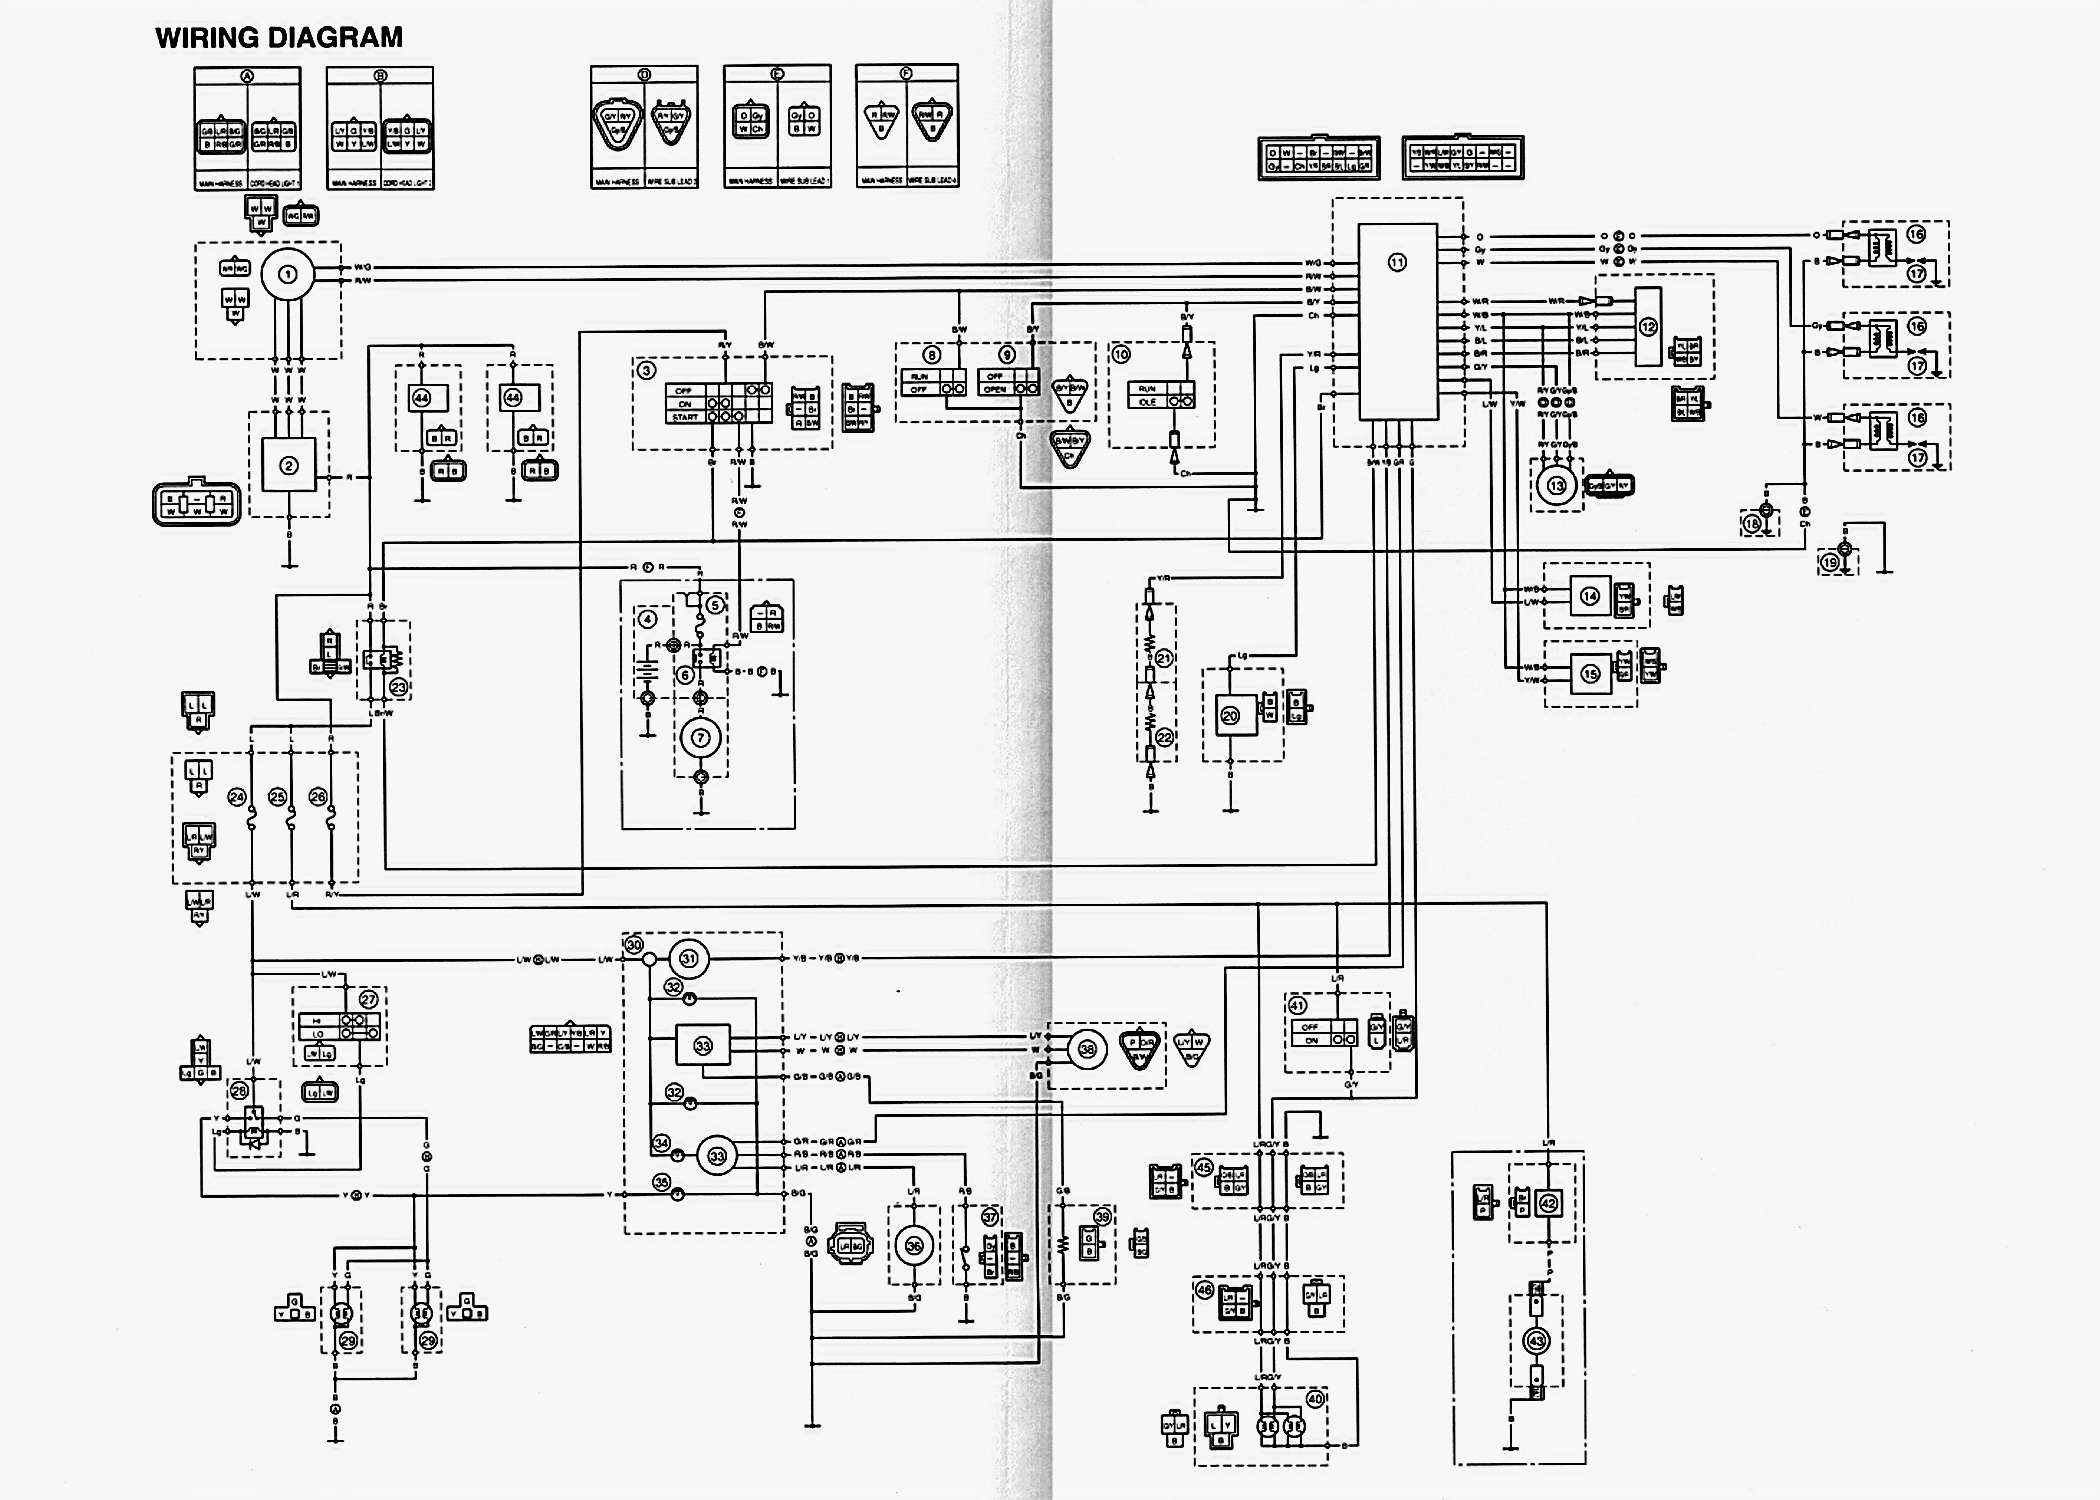 Yamaha Viper Fuel Pump Diagram Schematics Wiring Diagrams Dt466 Engine Oil Manual Rh Zenitram Inc Com Injection Perkins